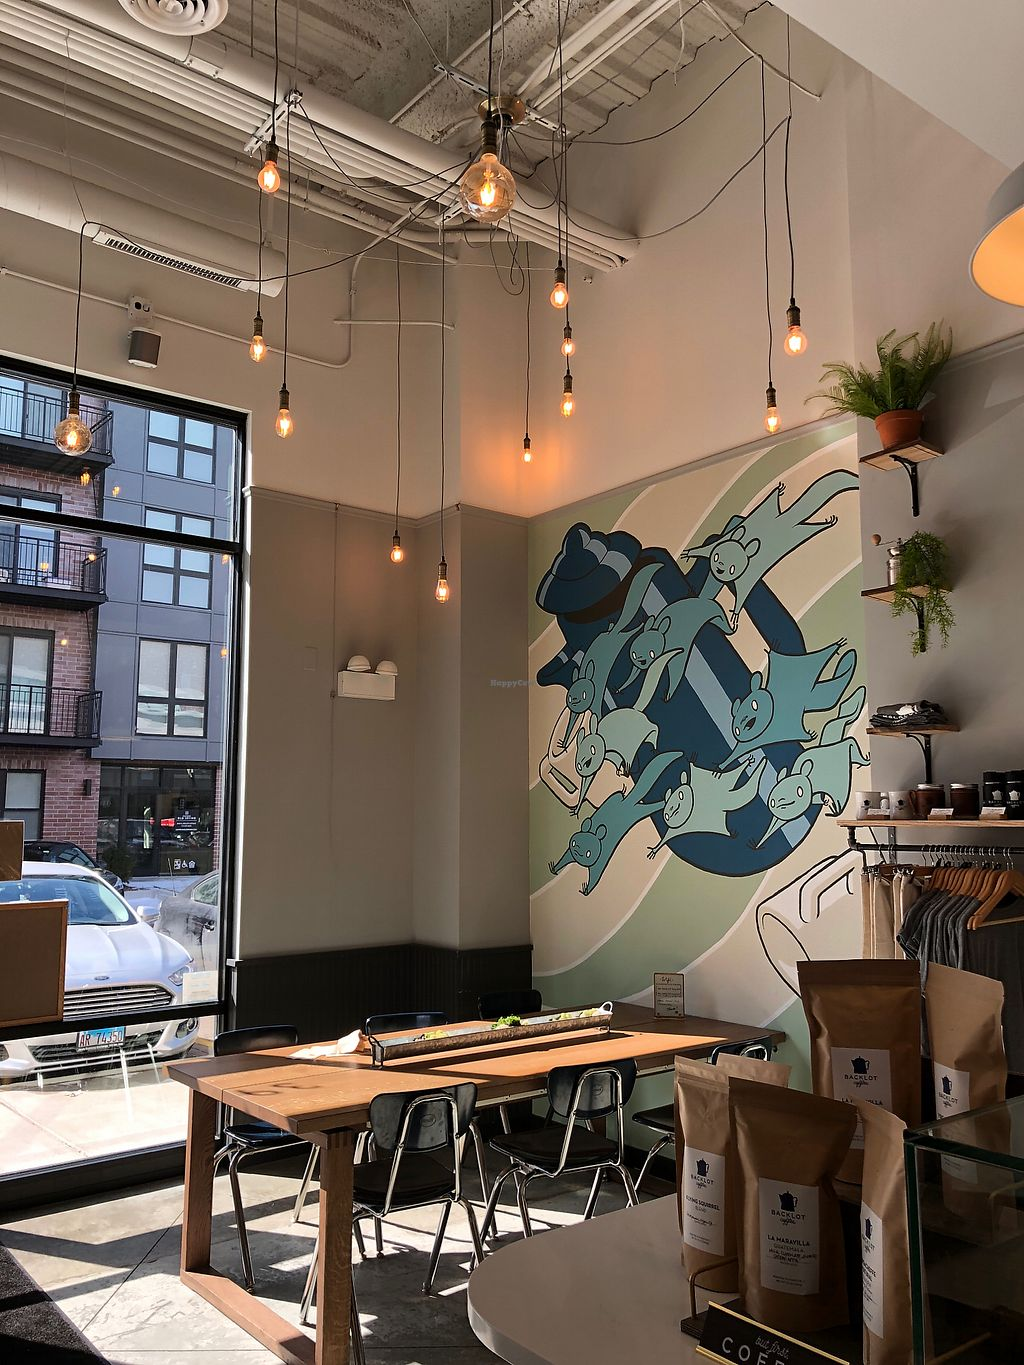 """Photo of Backlot Coffee  by <a href=""""/members/profile/dotmrc"""">dotmrc</a> <br/>Lots of available seating! <br/> March 14, 2018  - <a href='/contact/abuse/image/114582/370637'>Report</a>"""